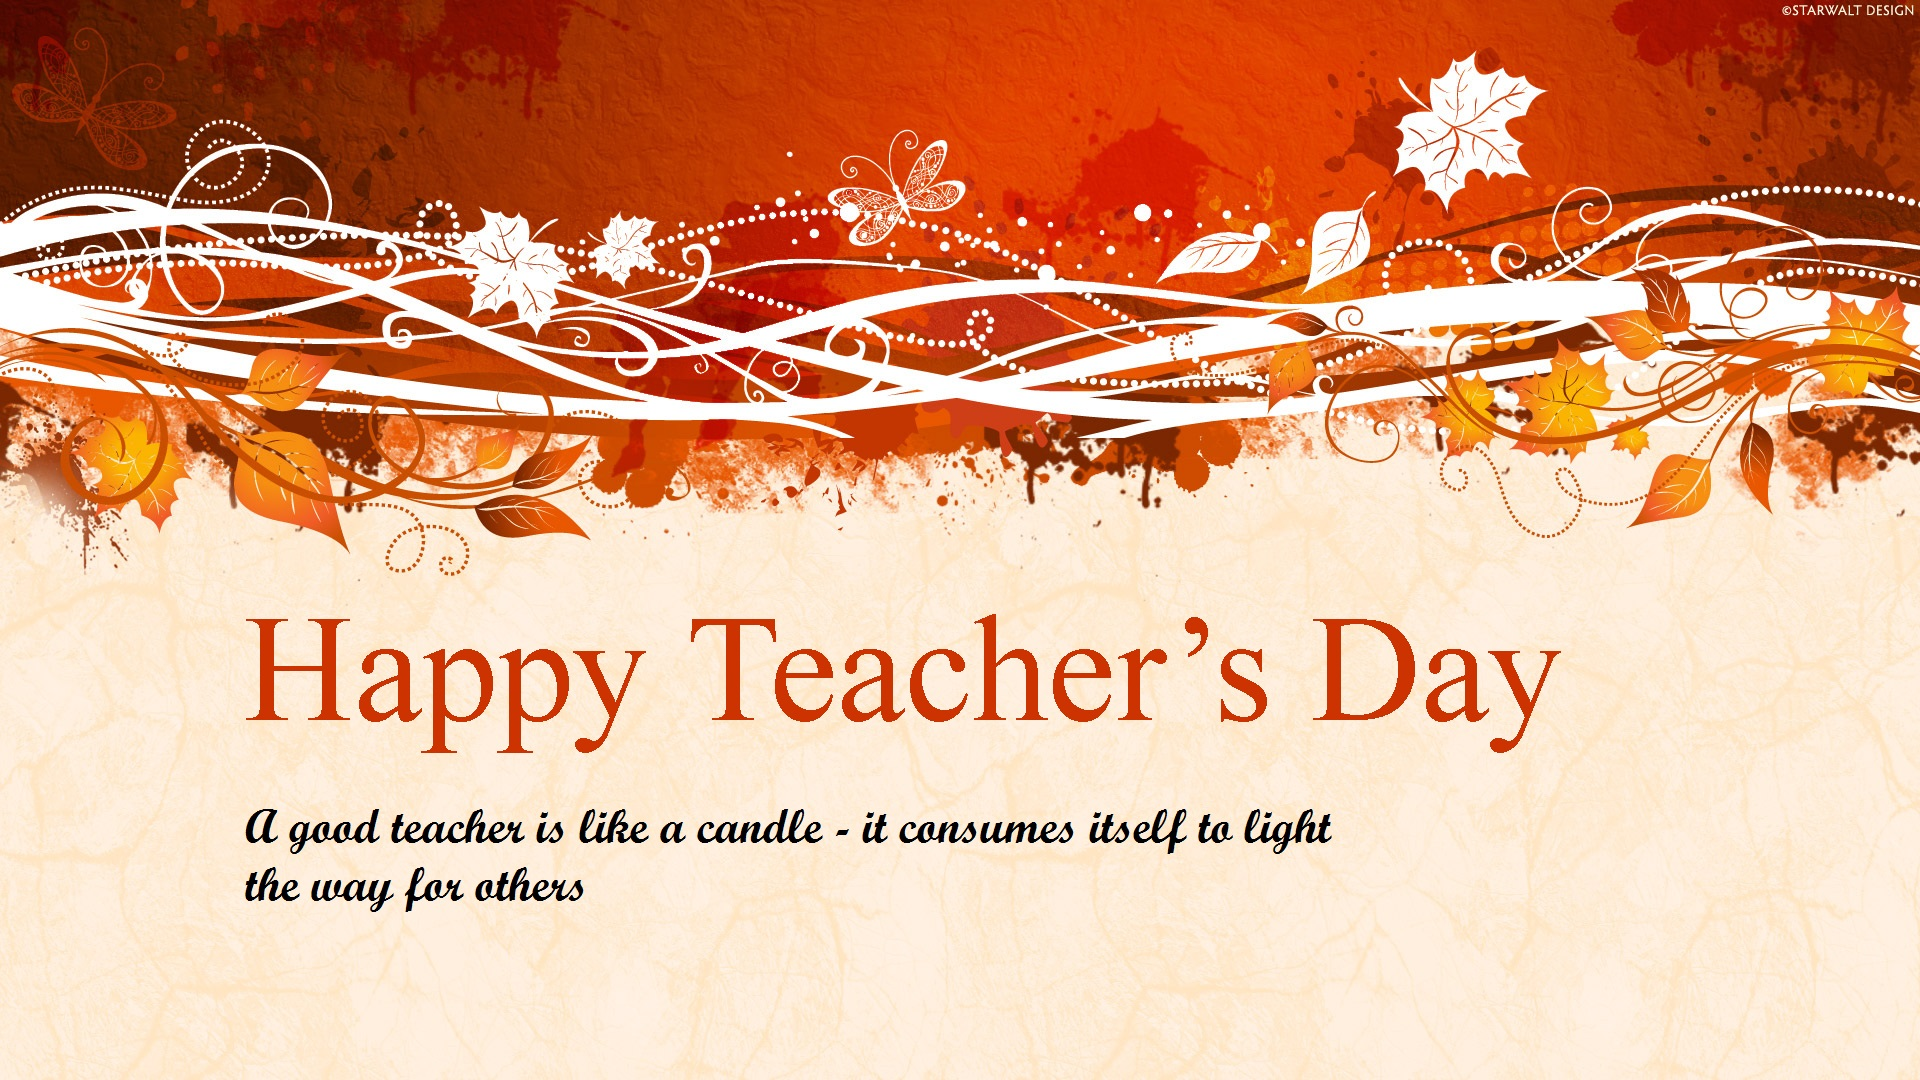 Happy teachers day hd images wallpapers pics and photos free teachers day hd pics photos free download altavistaventures Choice Image